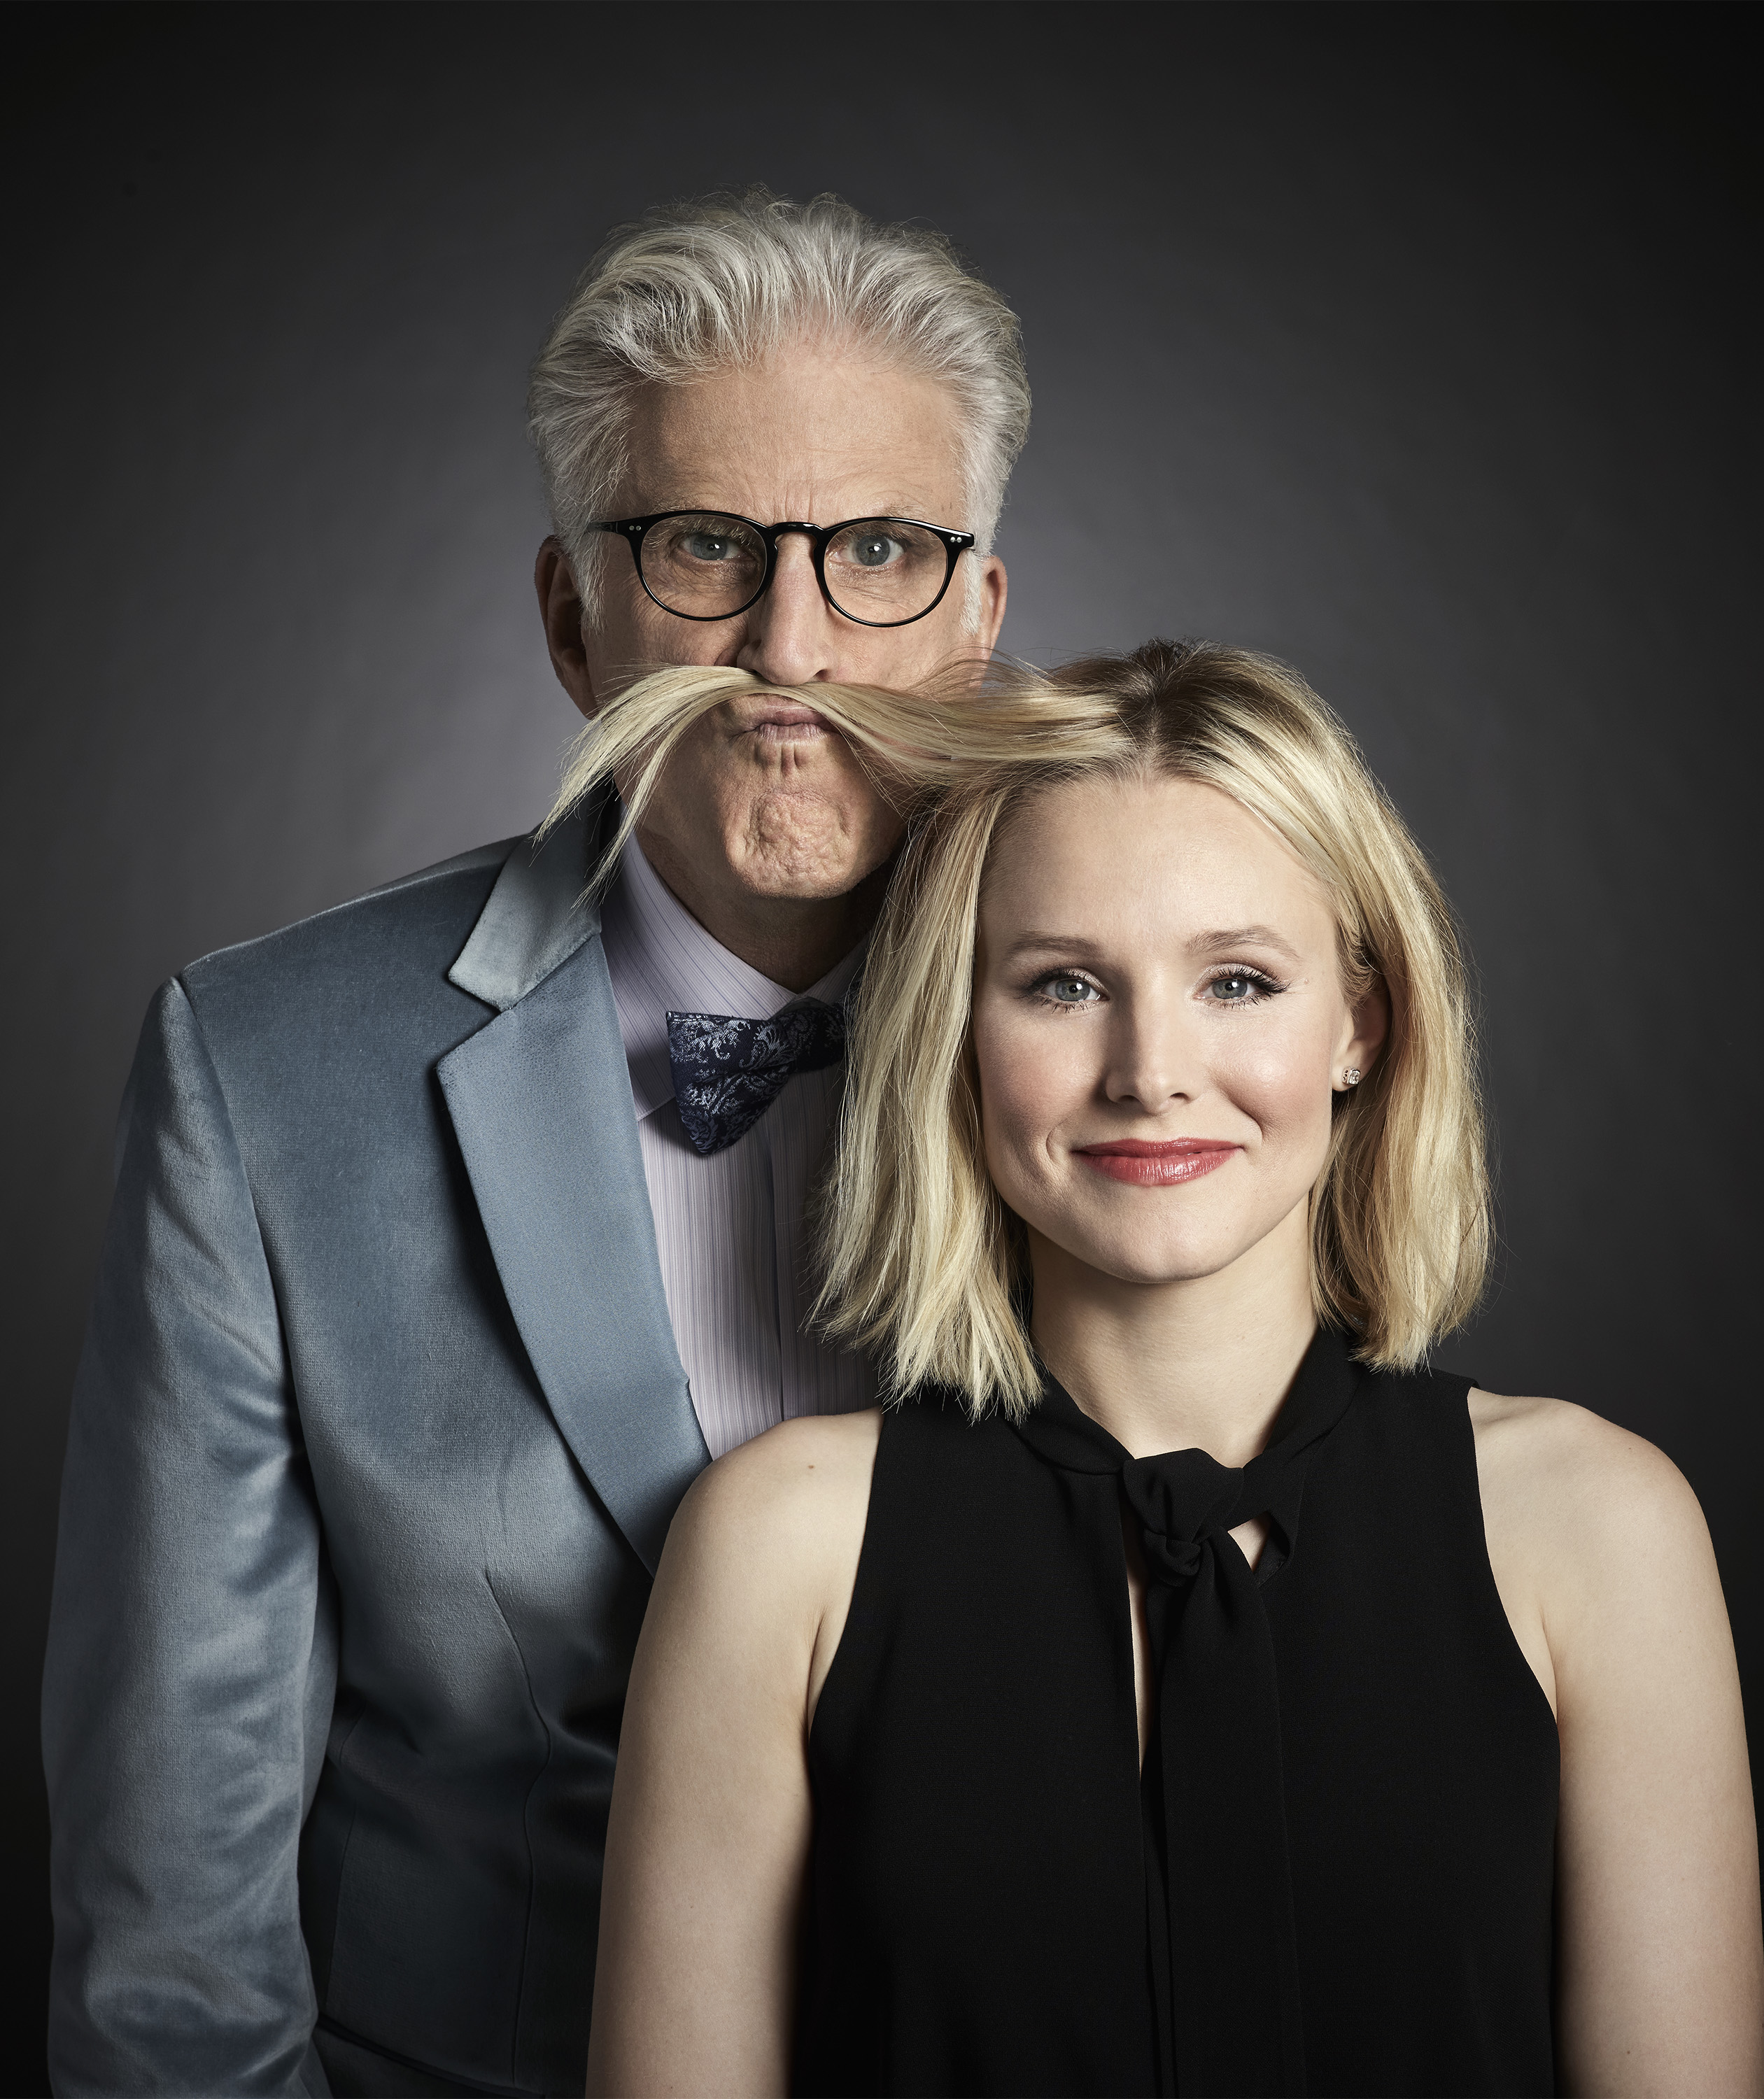 Ted Danson and Kristen Bell at an event for The Good Place (2016)